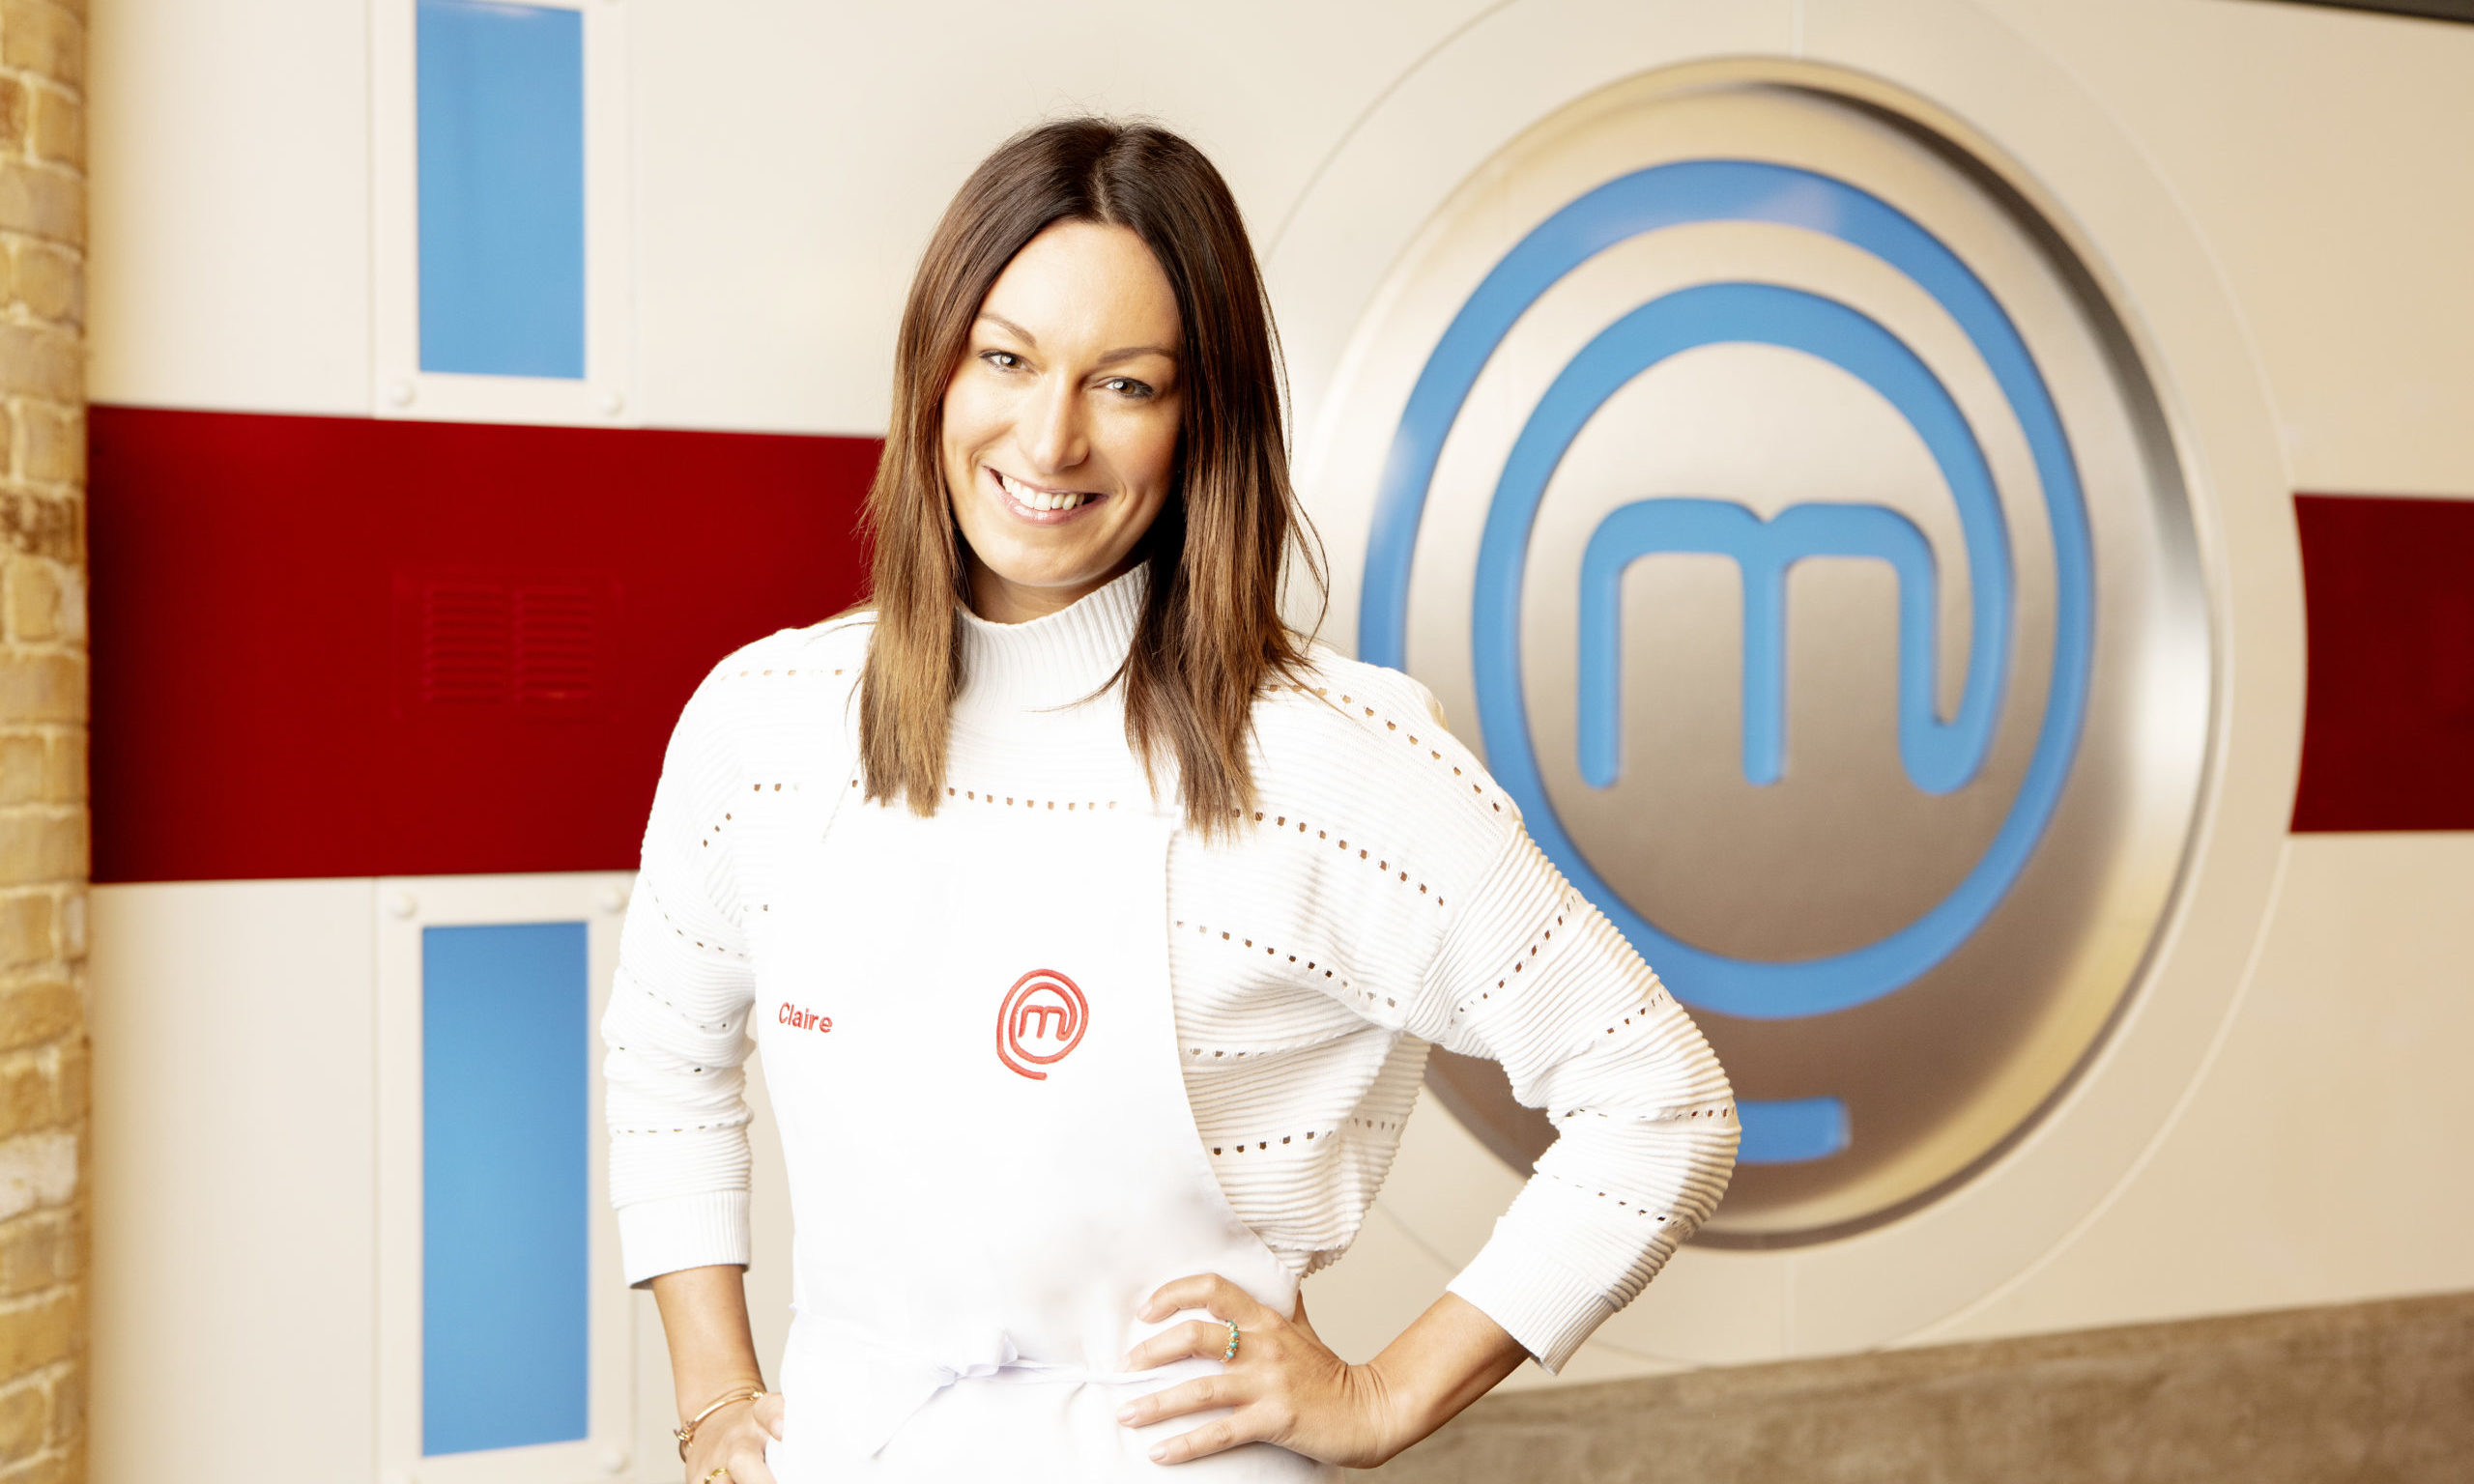 Claire will be battling it out for the Masterchef title this week.